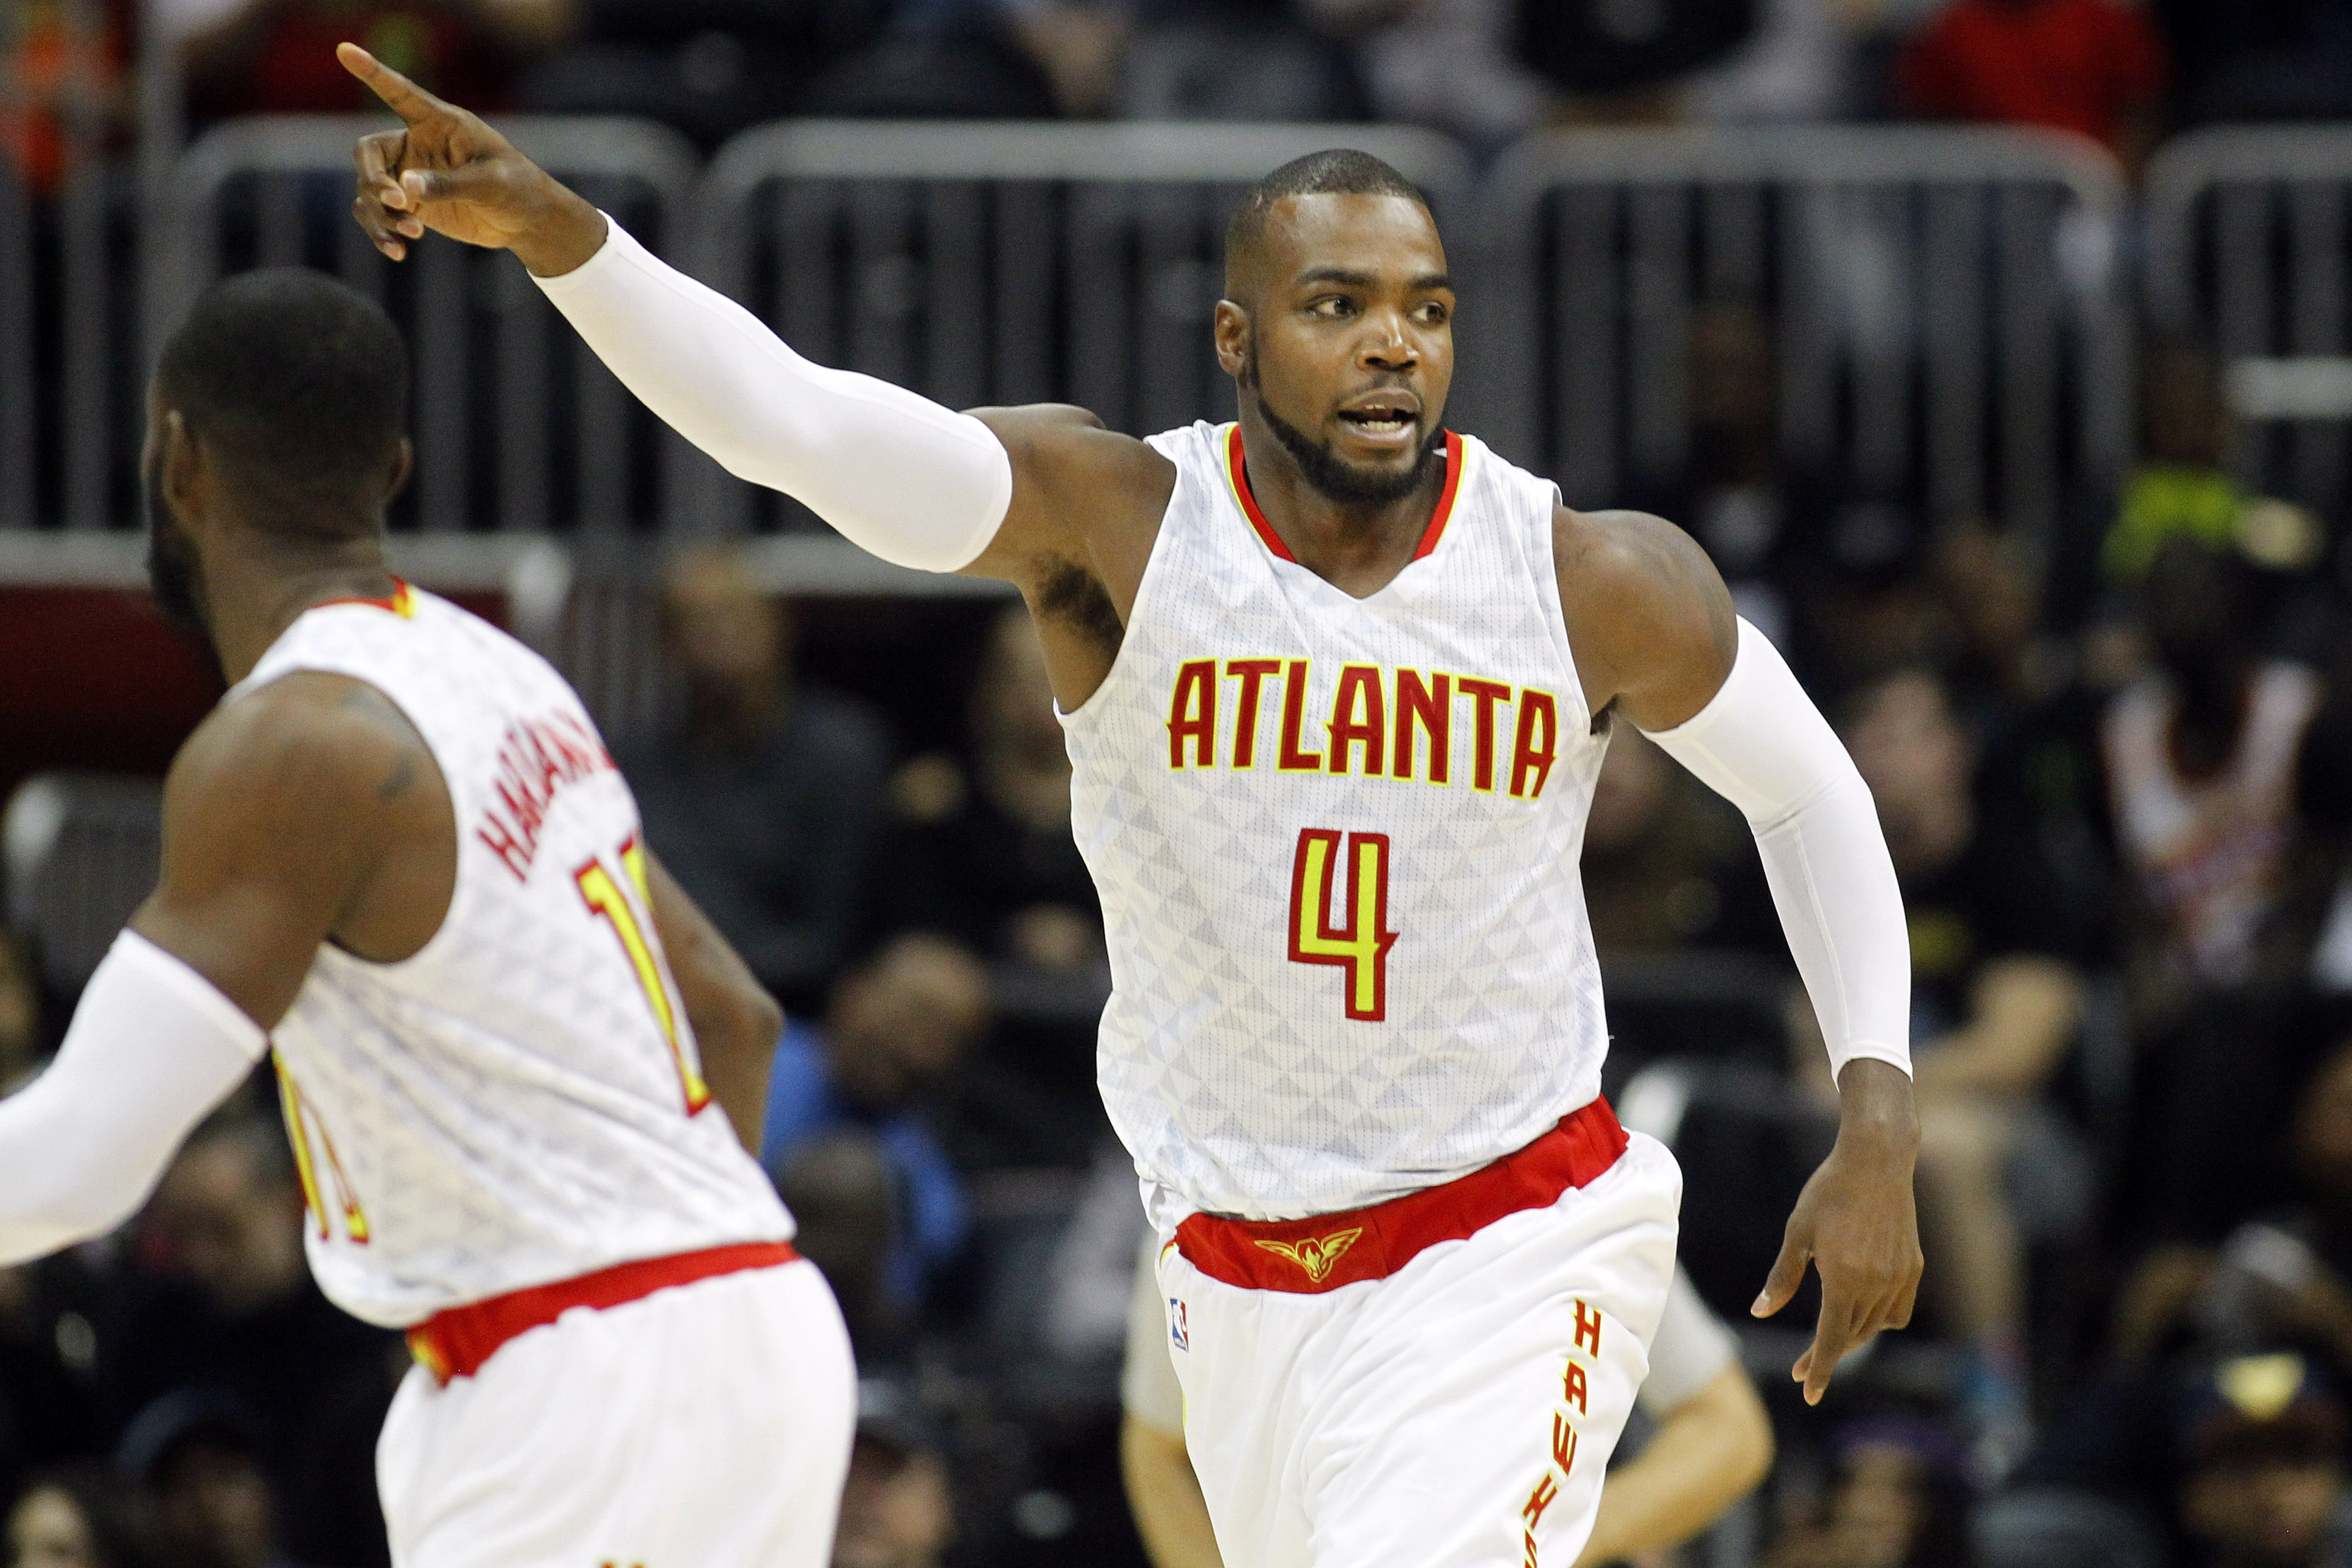 Utah Jazz: A reunion with Paul Millsap is an option worth exploring